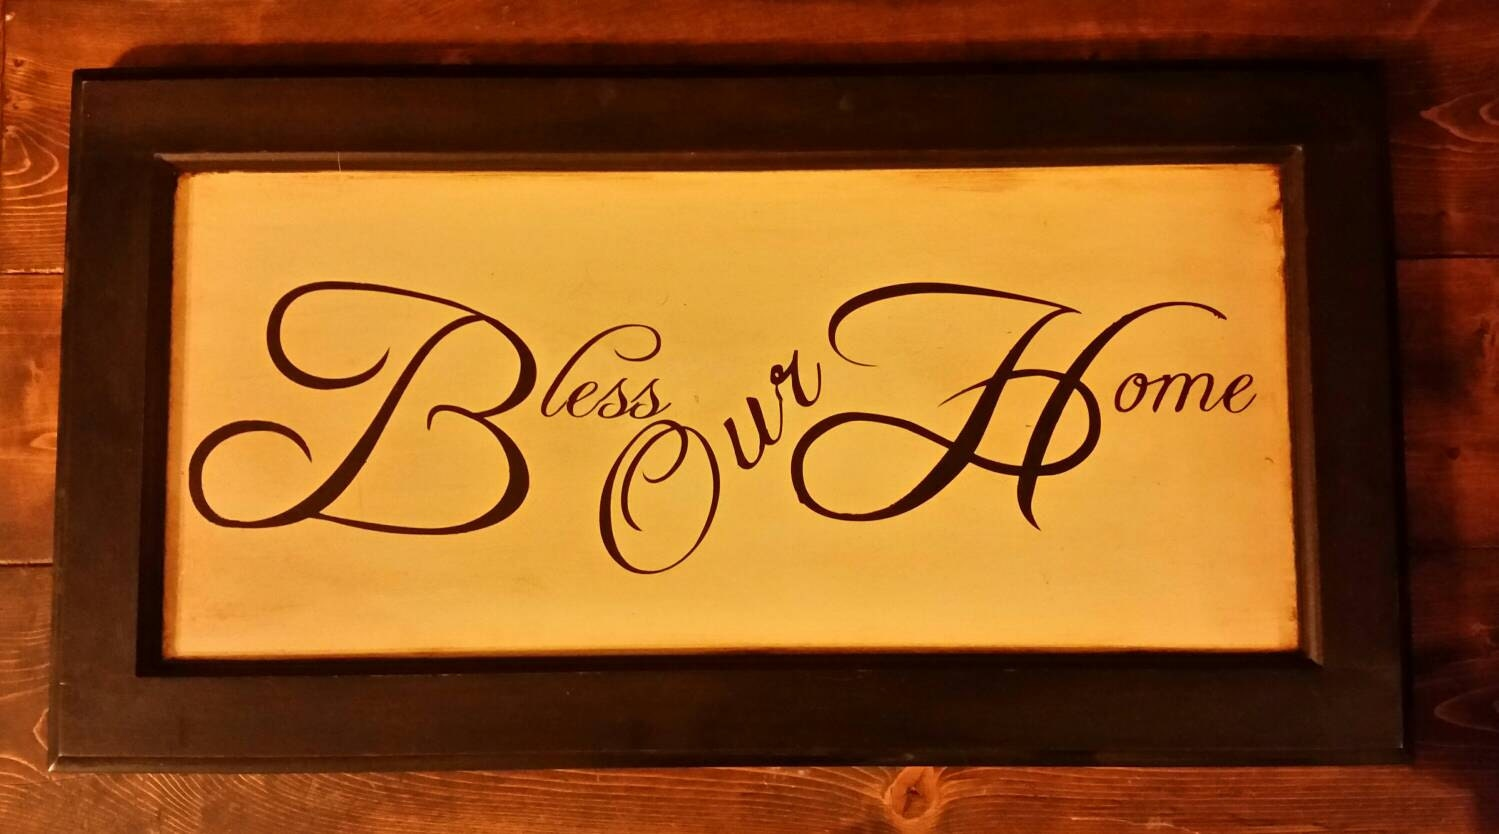 Wooden Bless Our Home Sign Bless Our Home Wall Hanging Bless